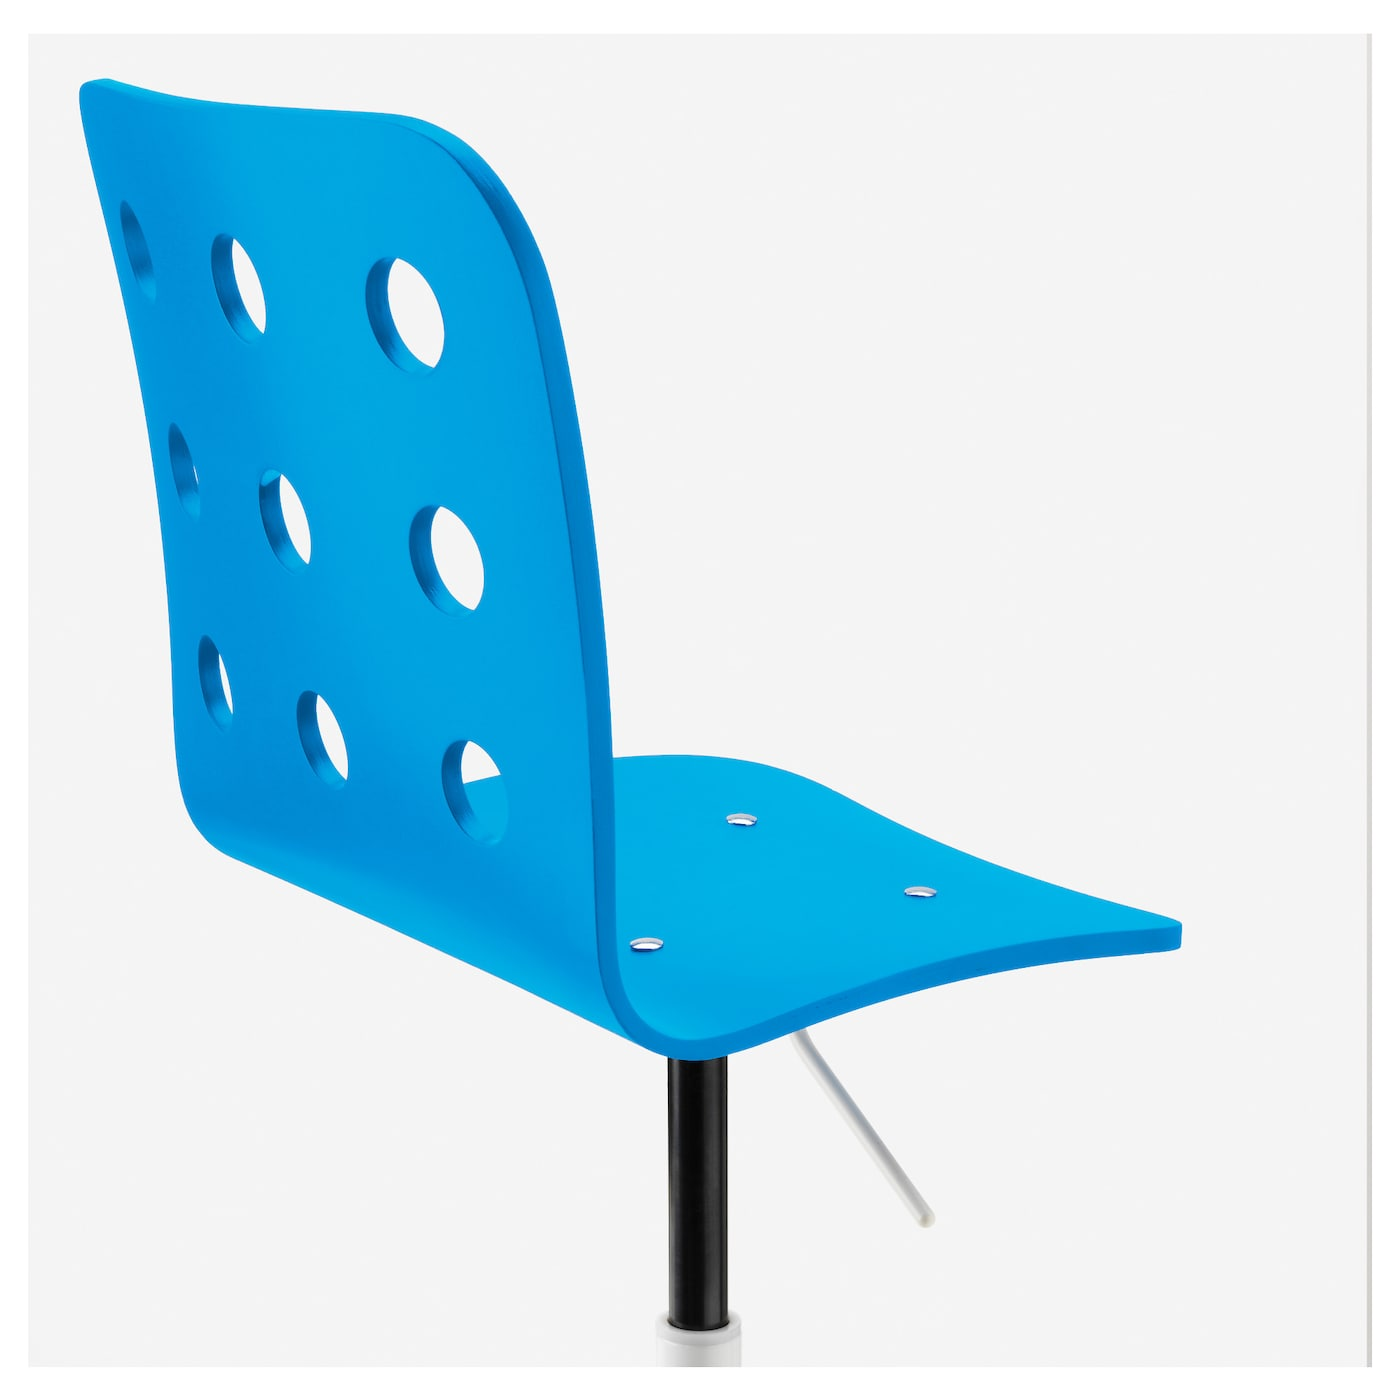 Marvelous IKEA JULES Childrenu0027s Desk Chair You Sit Comfortably Since The Chair Is  Adjustable In Height.